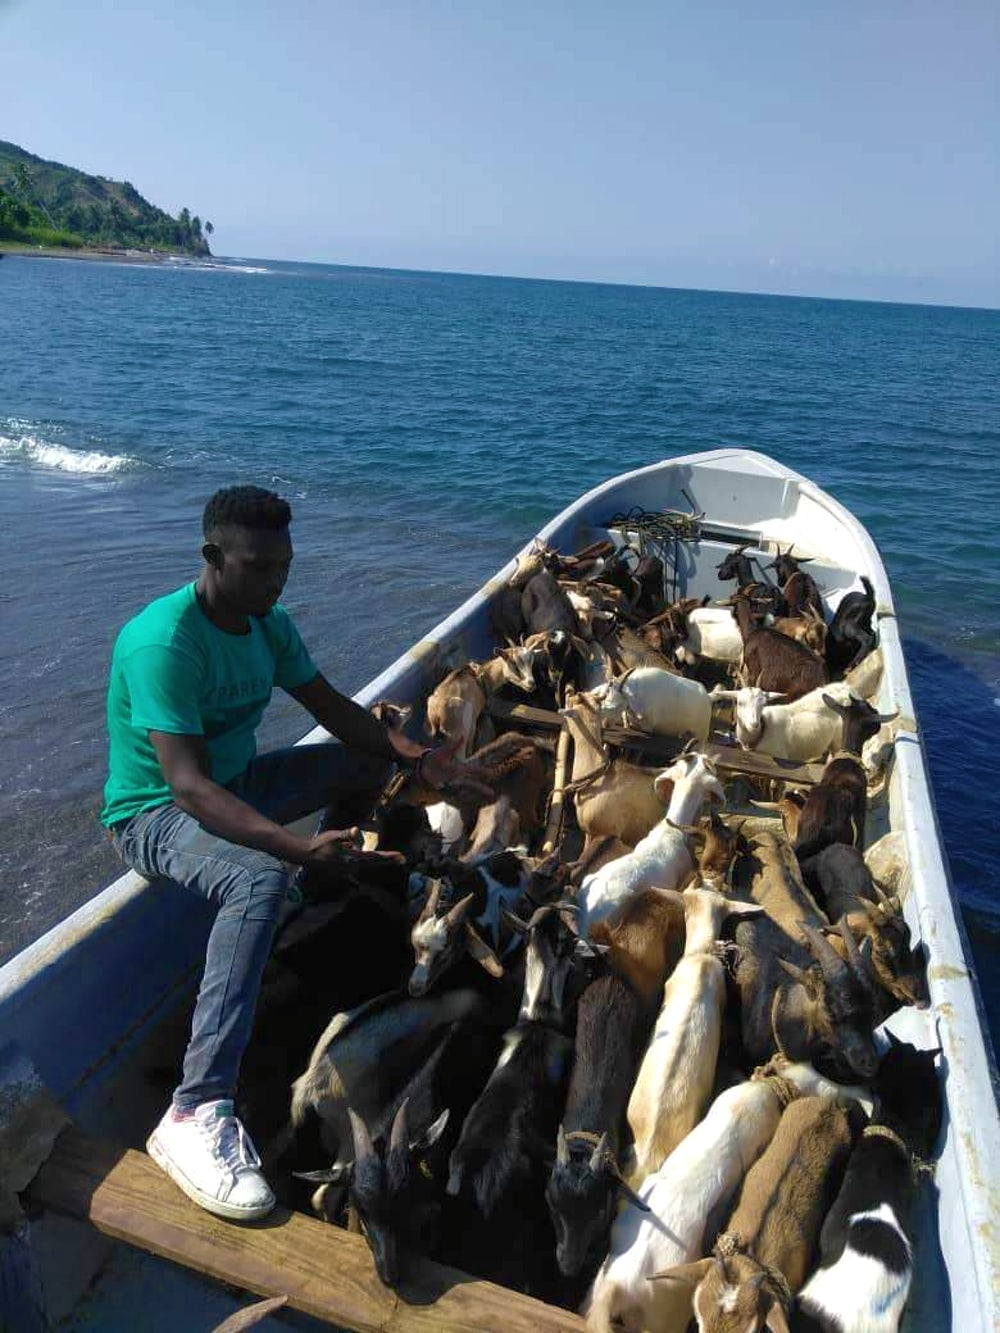 goats on boats